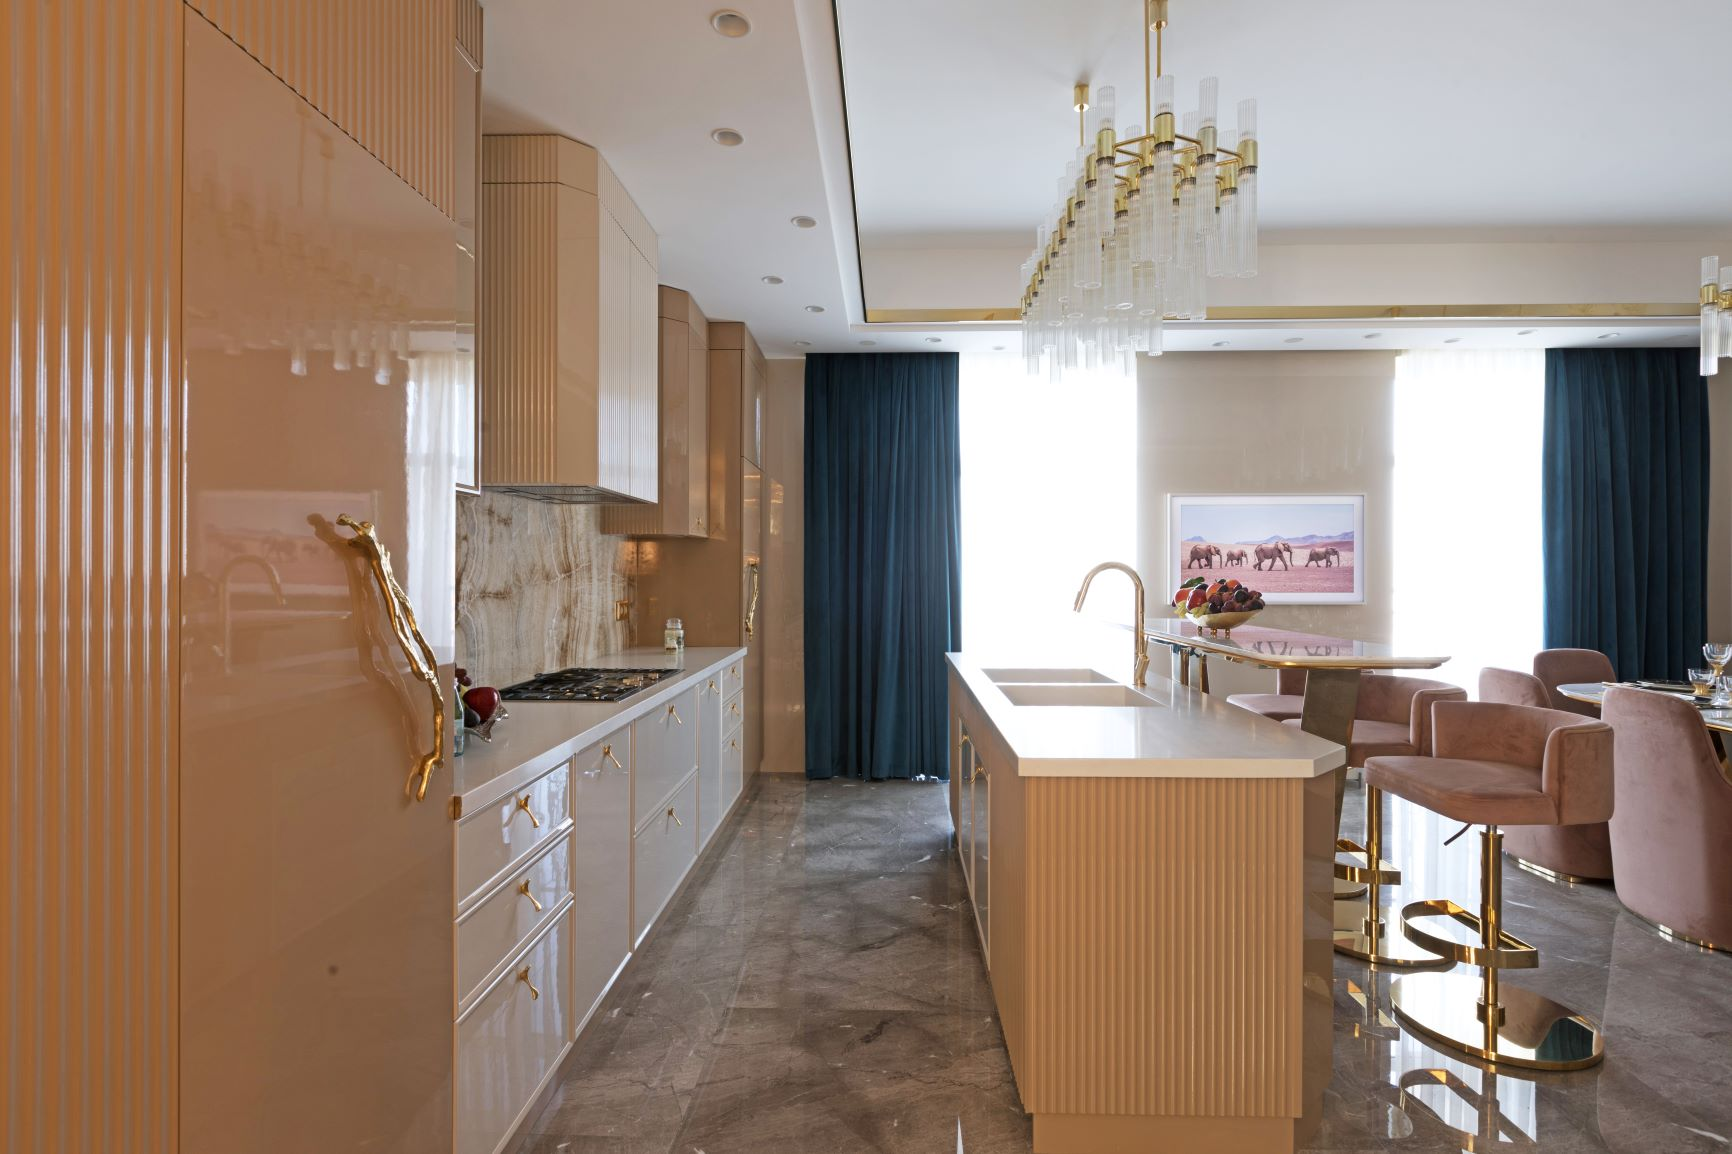 Discover The Best Design Projects In Istanbul design projects in istanbul Discover The Best Design Projects In Istanbul IMAGE 2